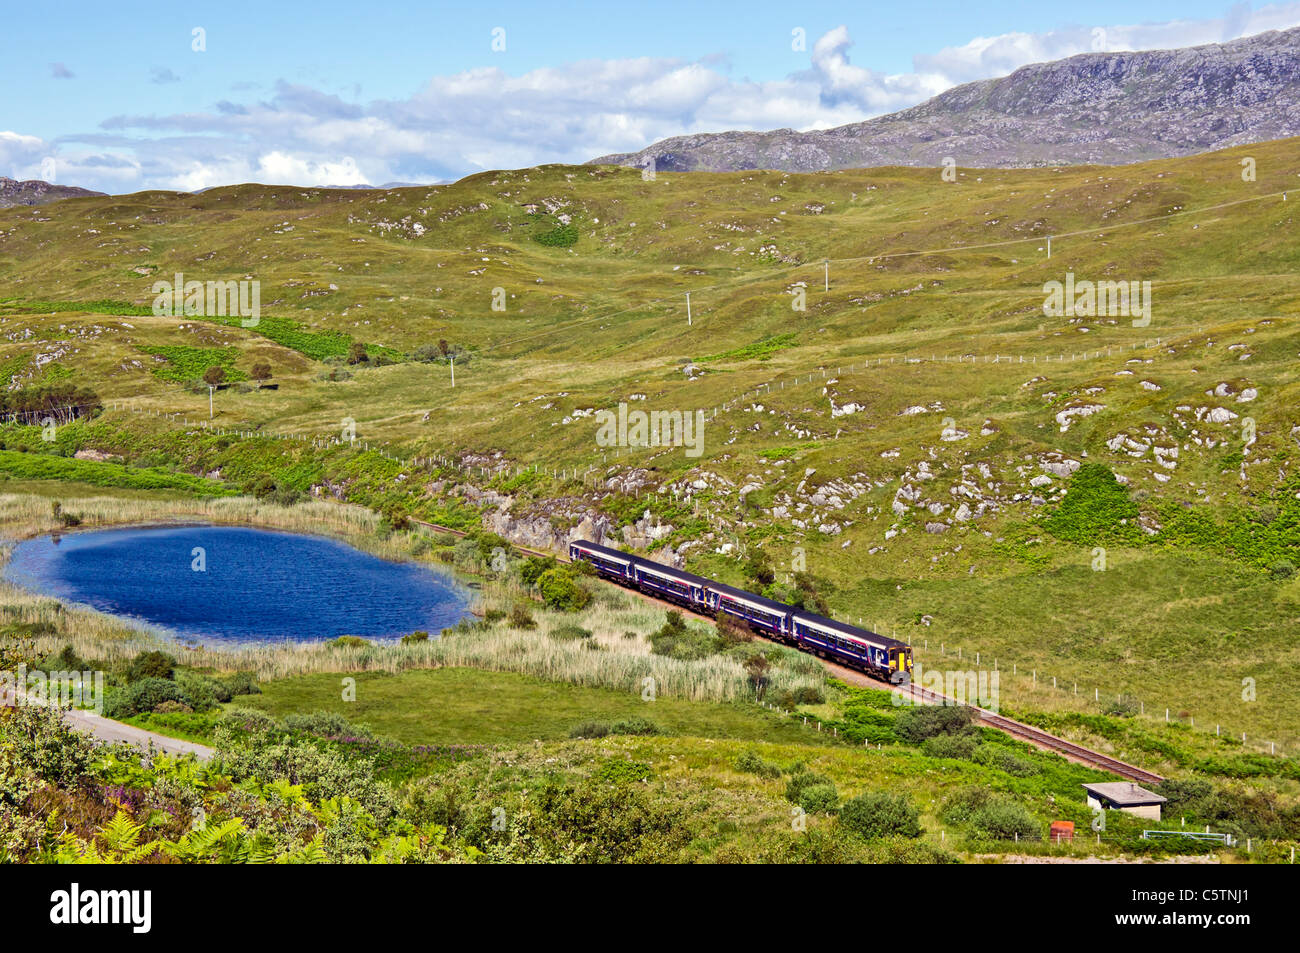 Afternoon class 156 First Scotrail DMU passing small loch before Morar on its journey from Mallaig to Fort William - Stock Image